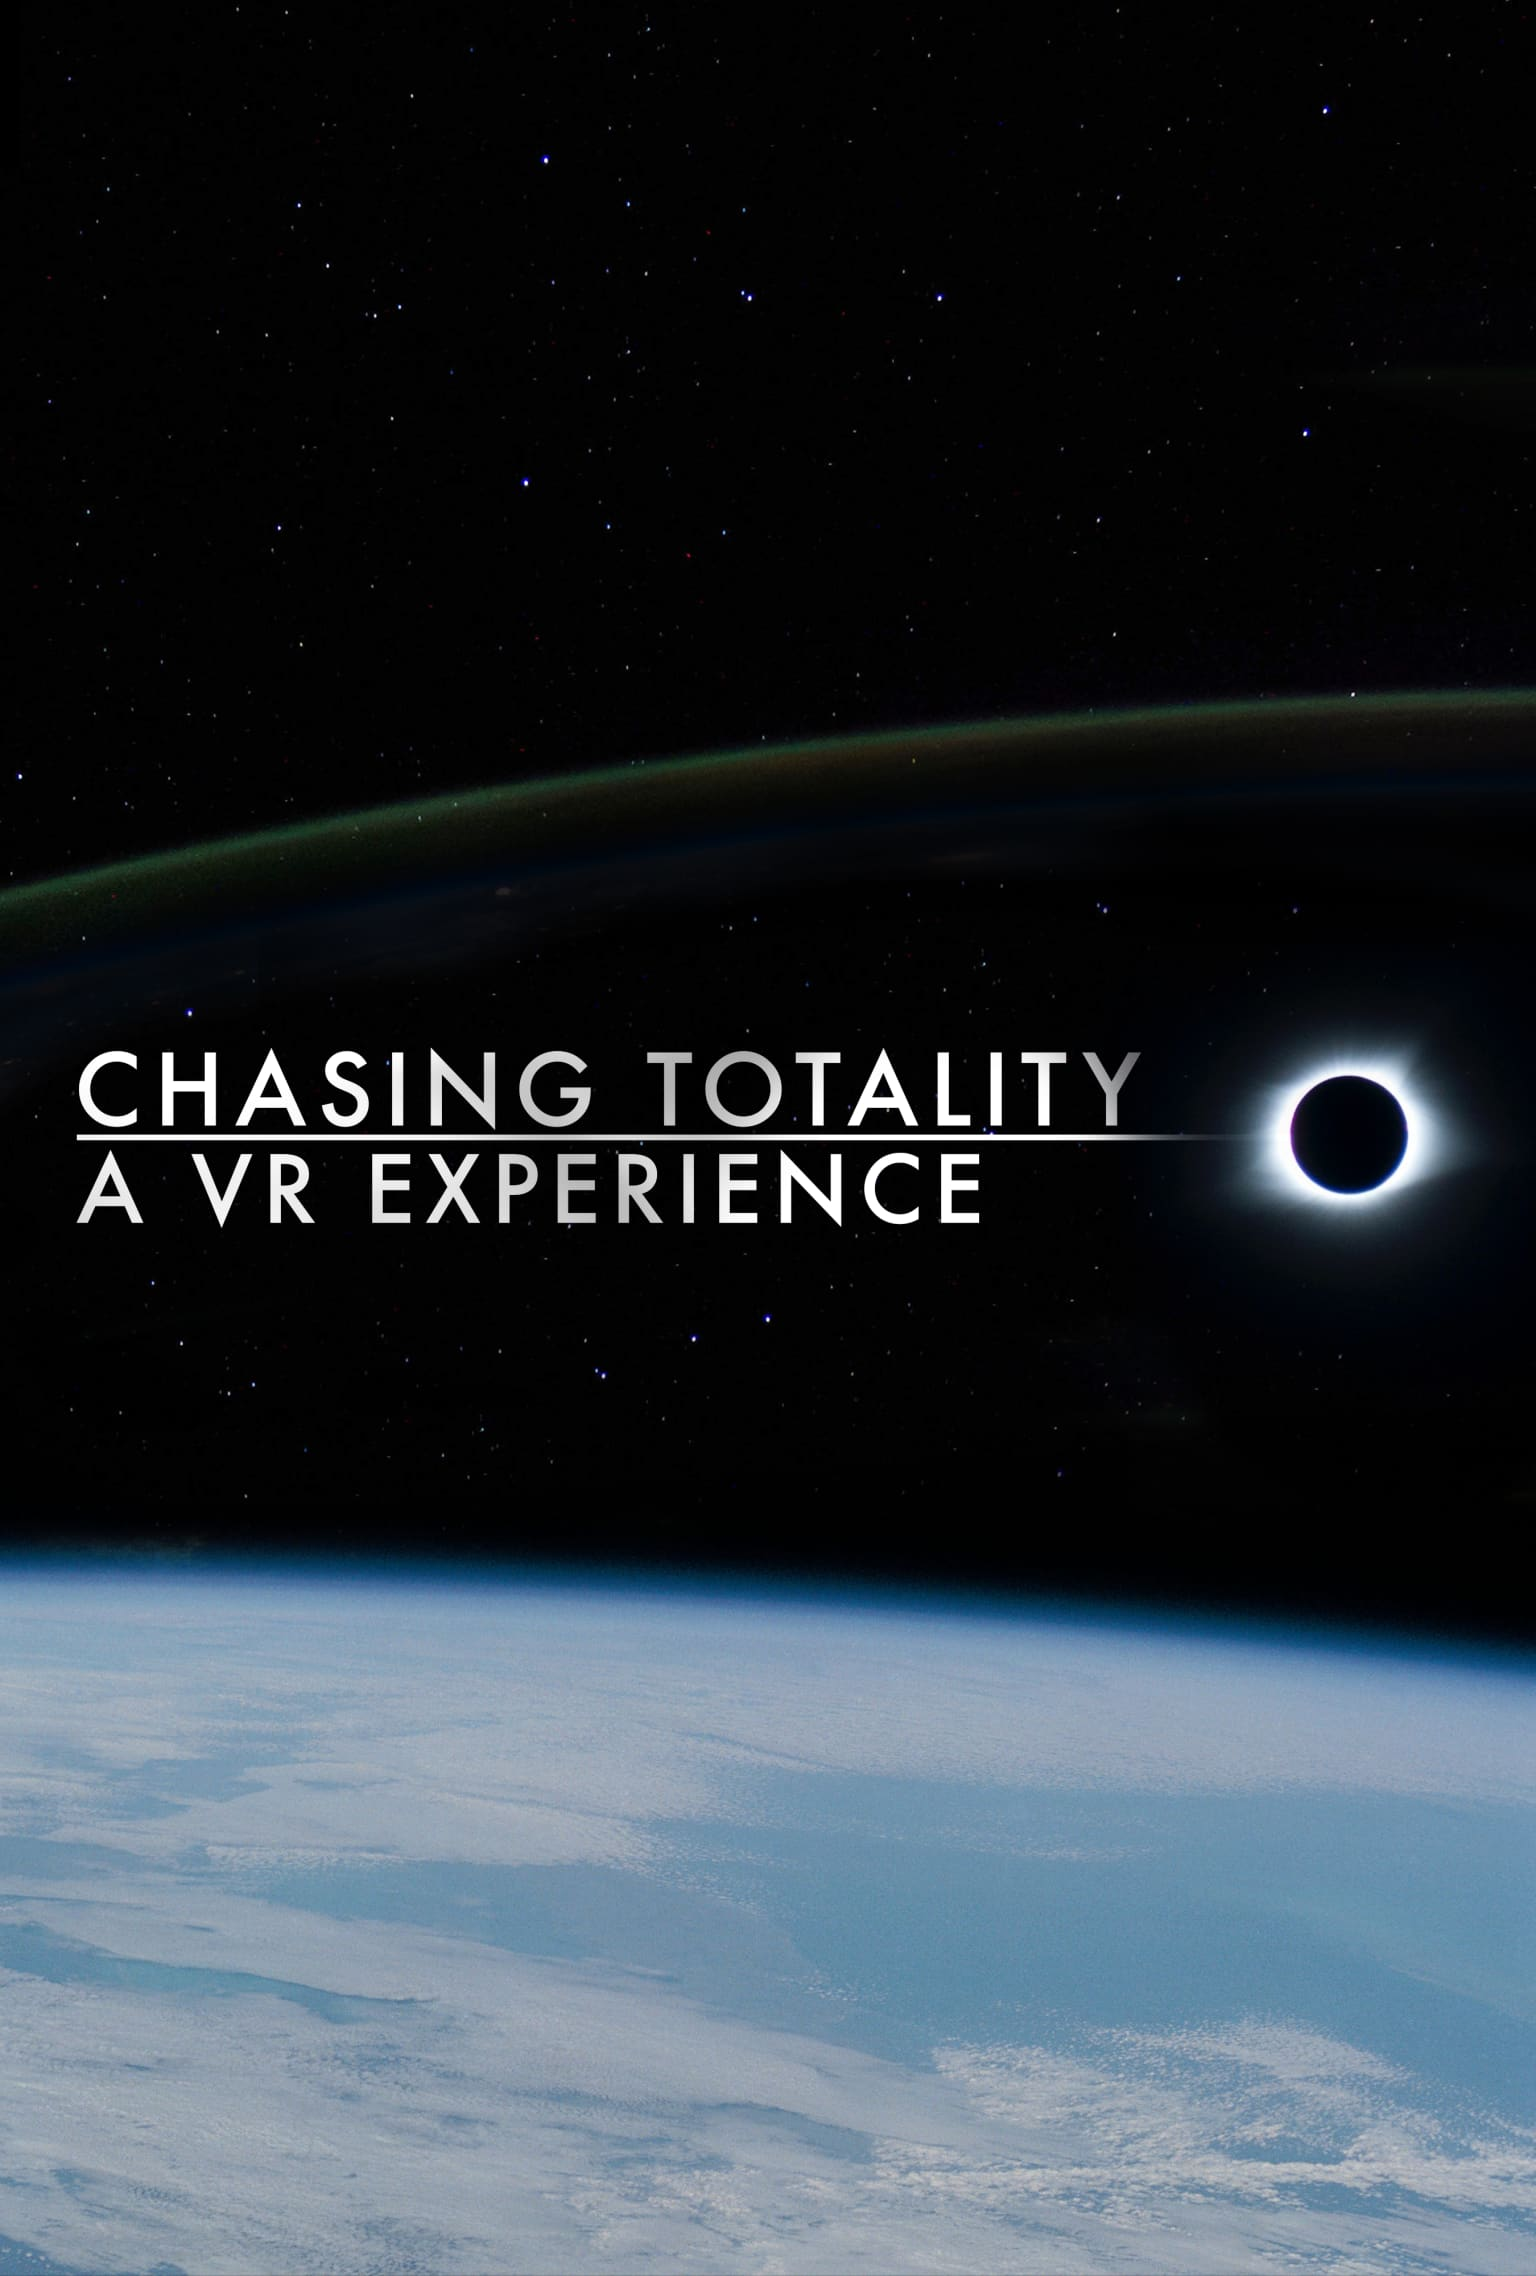 Chasing Totality: A VR Experience